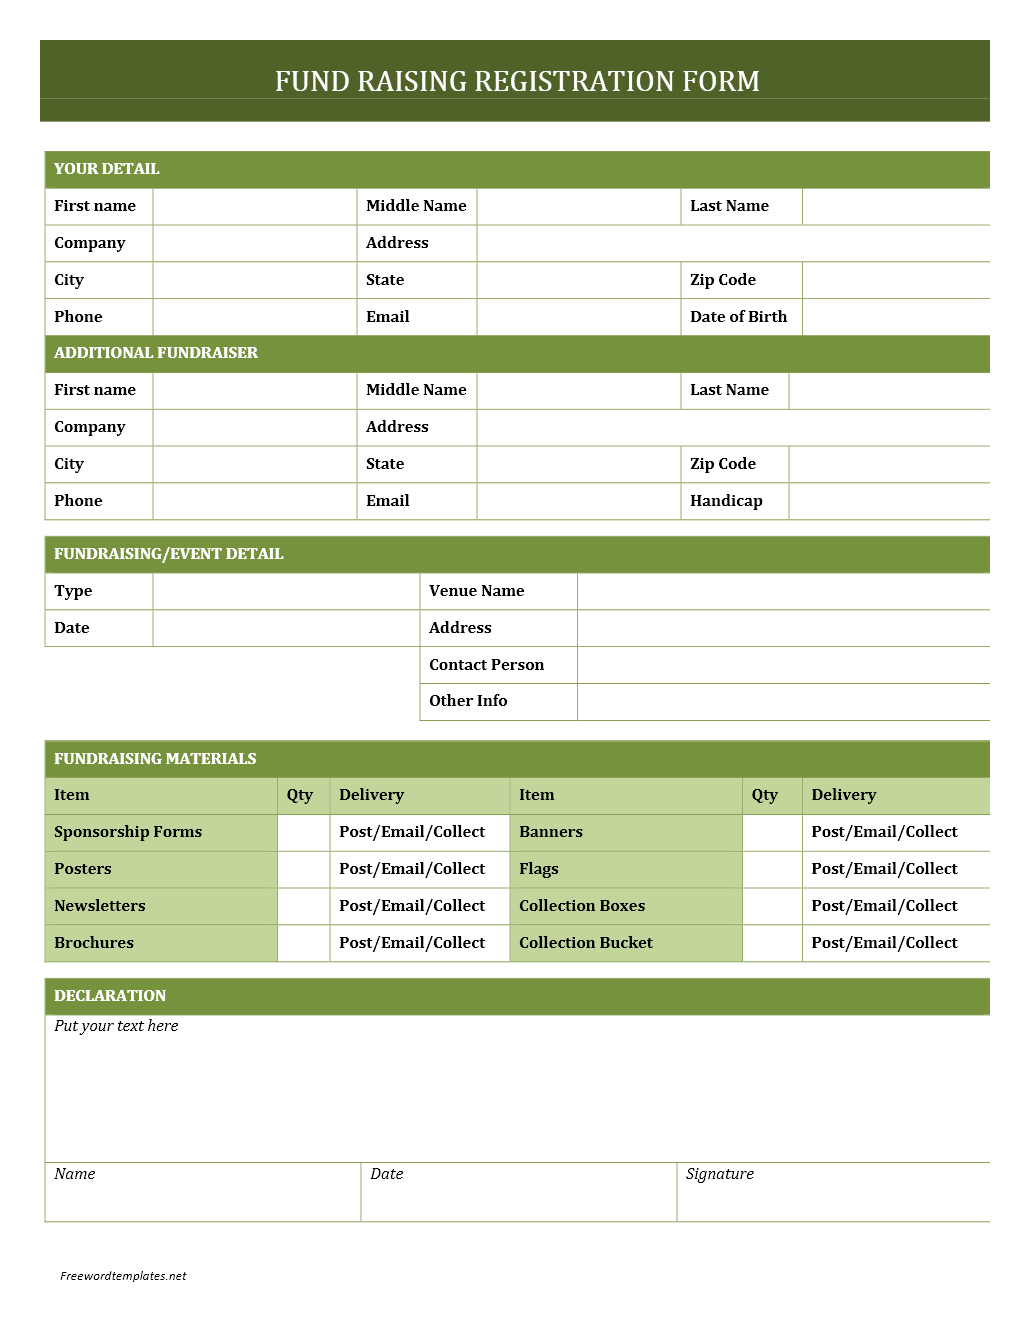 Fundraising registration form for Event booking form template word